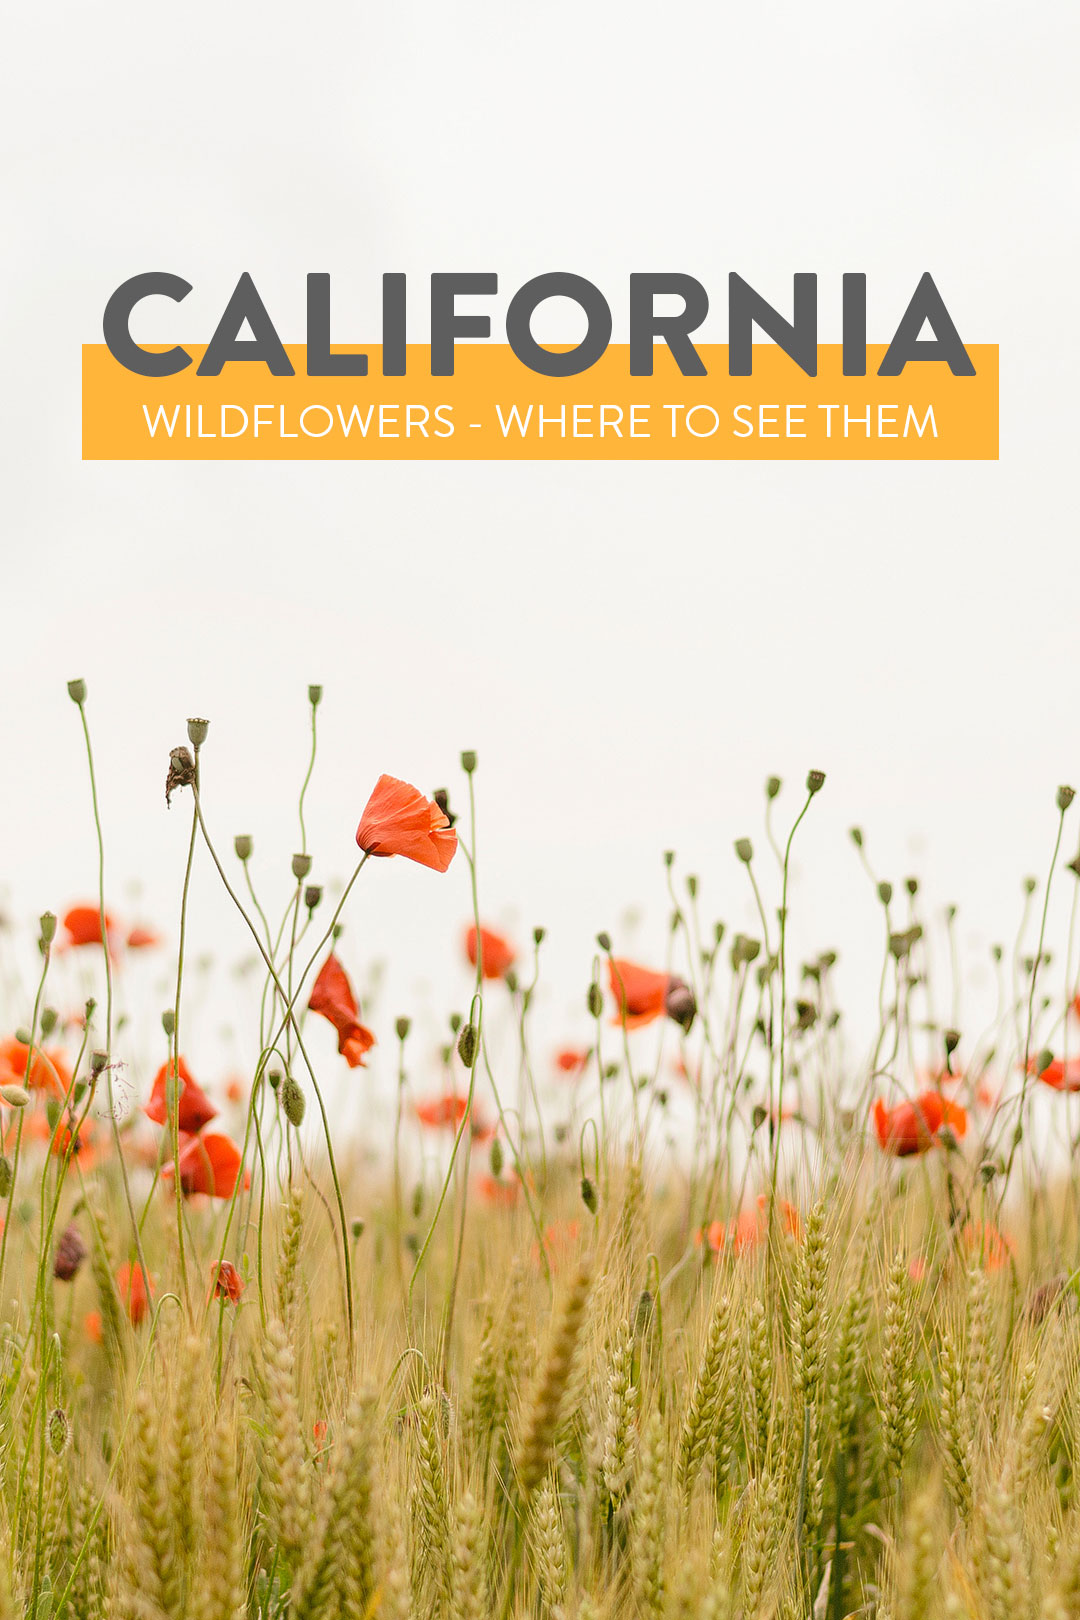 California Wildflowers - When and Where to See the Superbloom